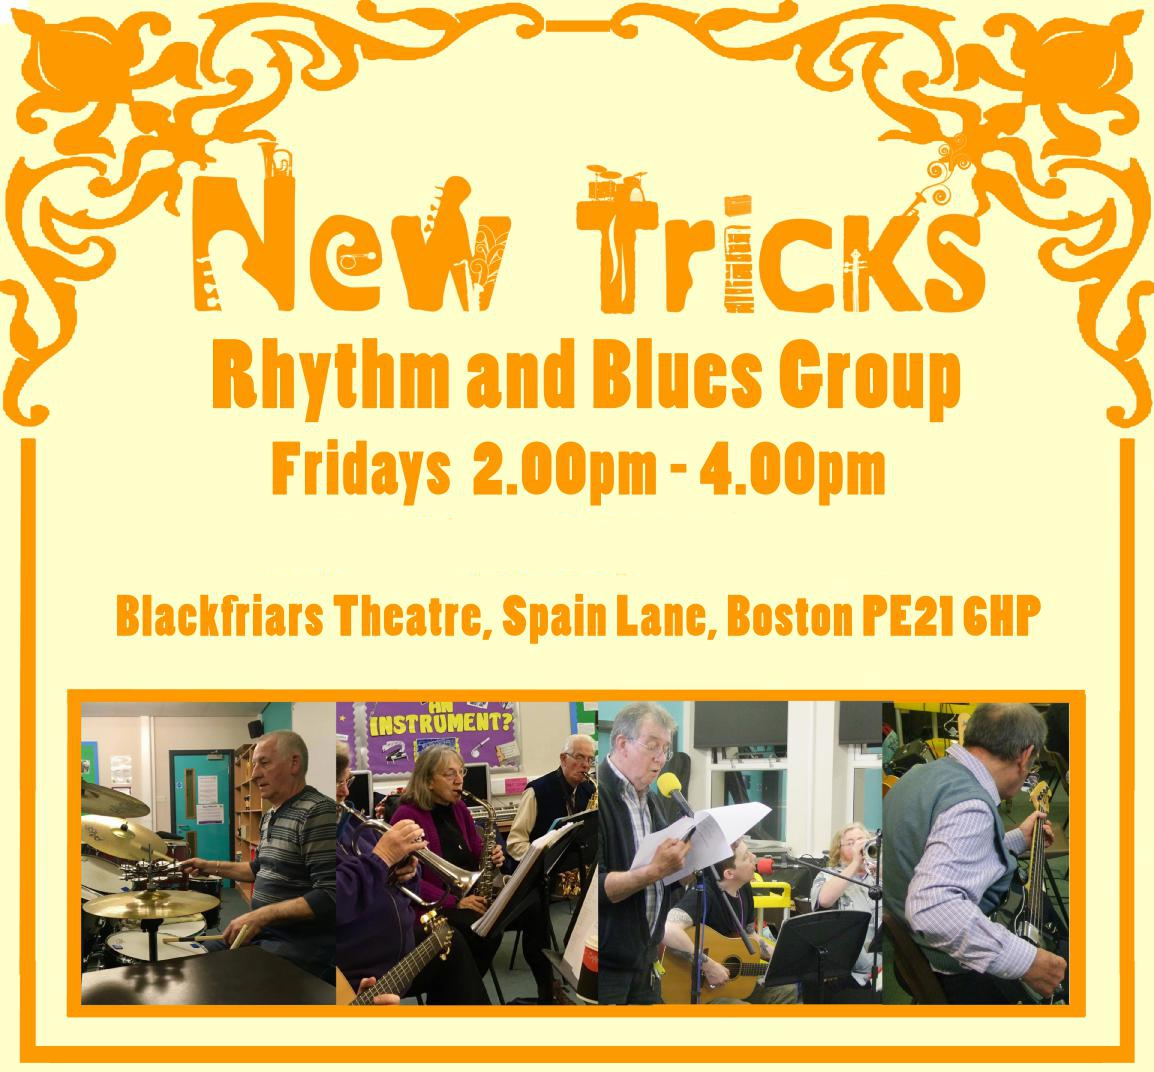 New Tricks - Rhythm and Blues Group - Continues at Blackfriars